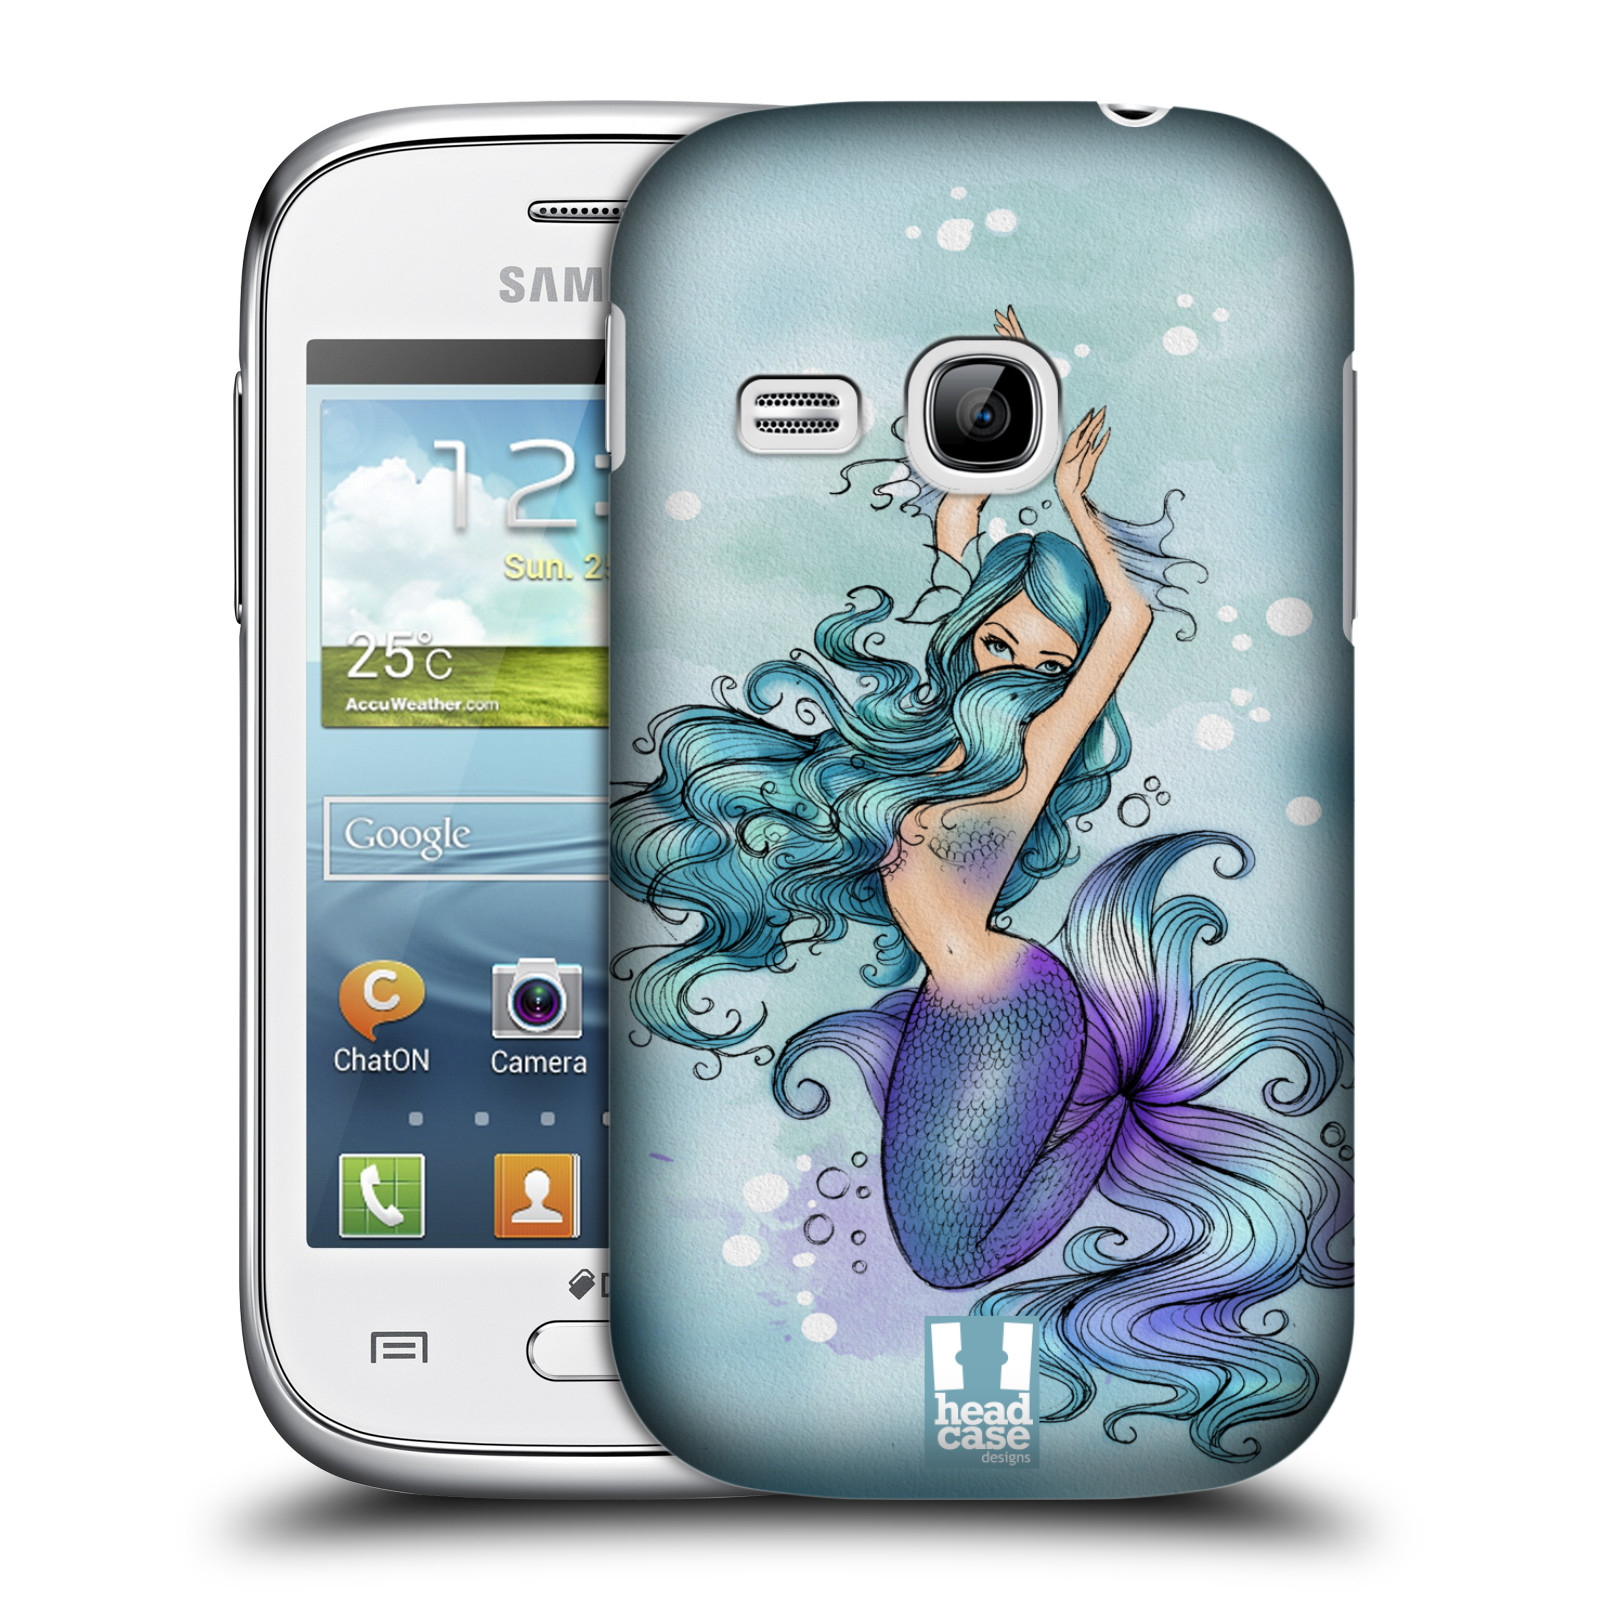 HEAD CASE DESIGNS MERMAIDS HARD BACK CASE FOR SAMSUNG GALAXY YOUNG S6310